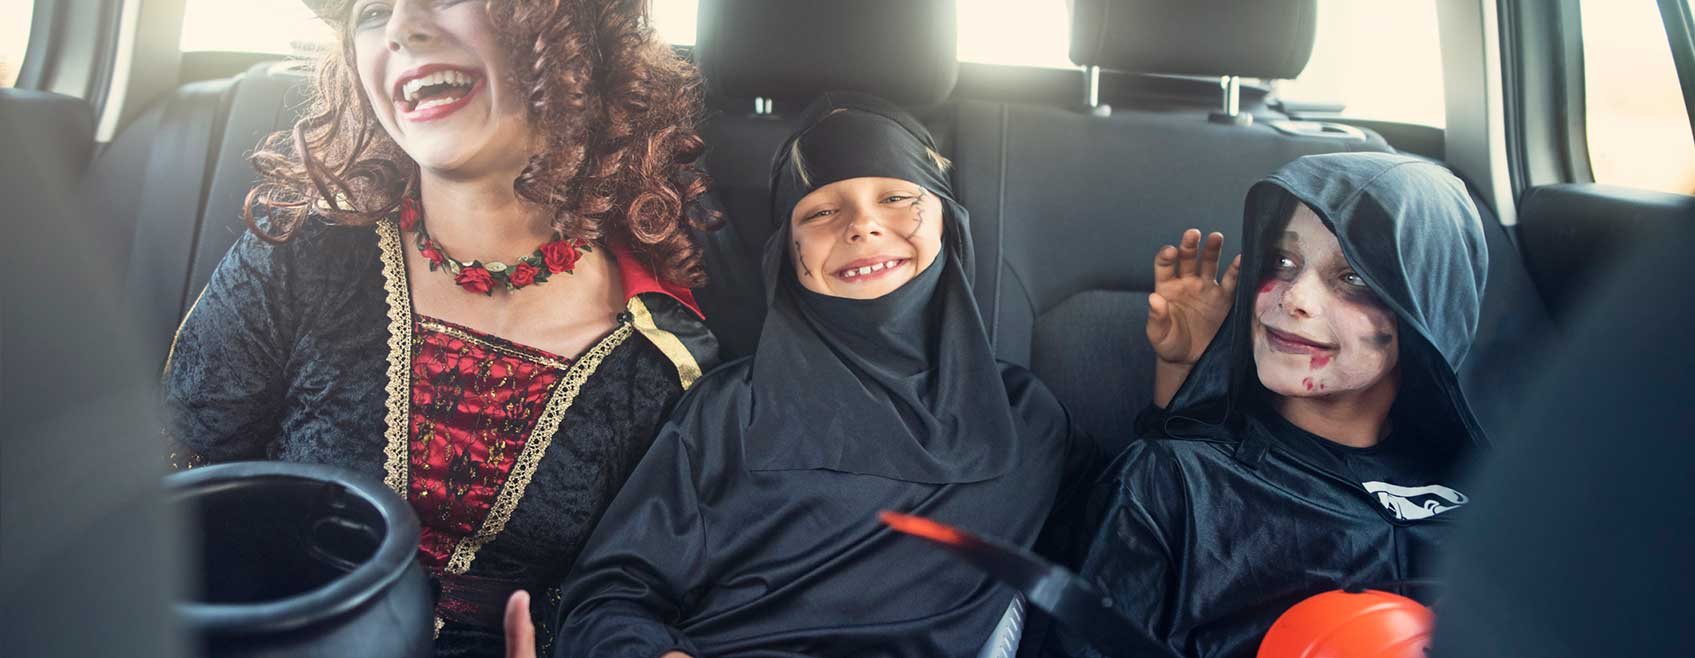 three children in Halloween costumes, laughing in the backseat of a car